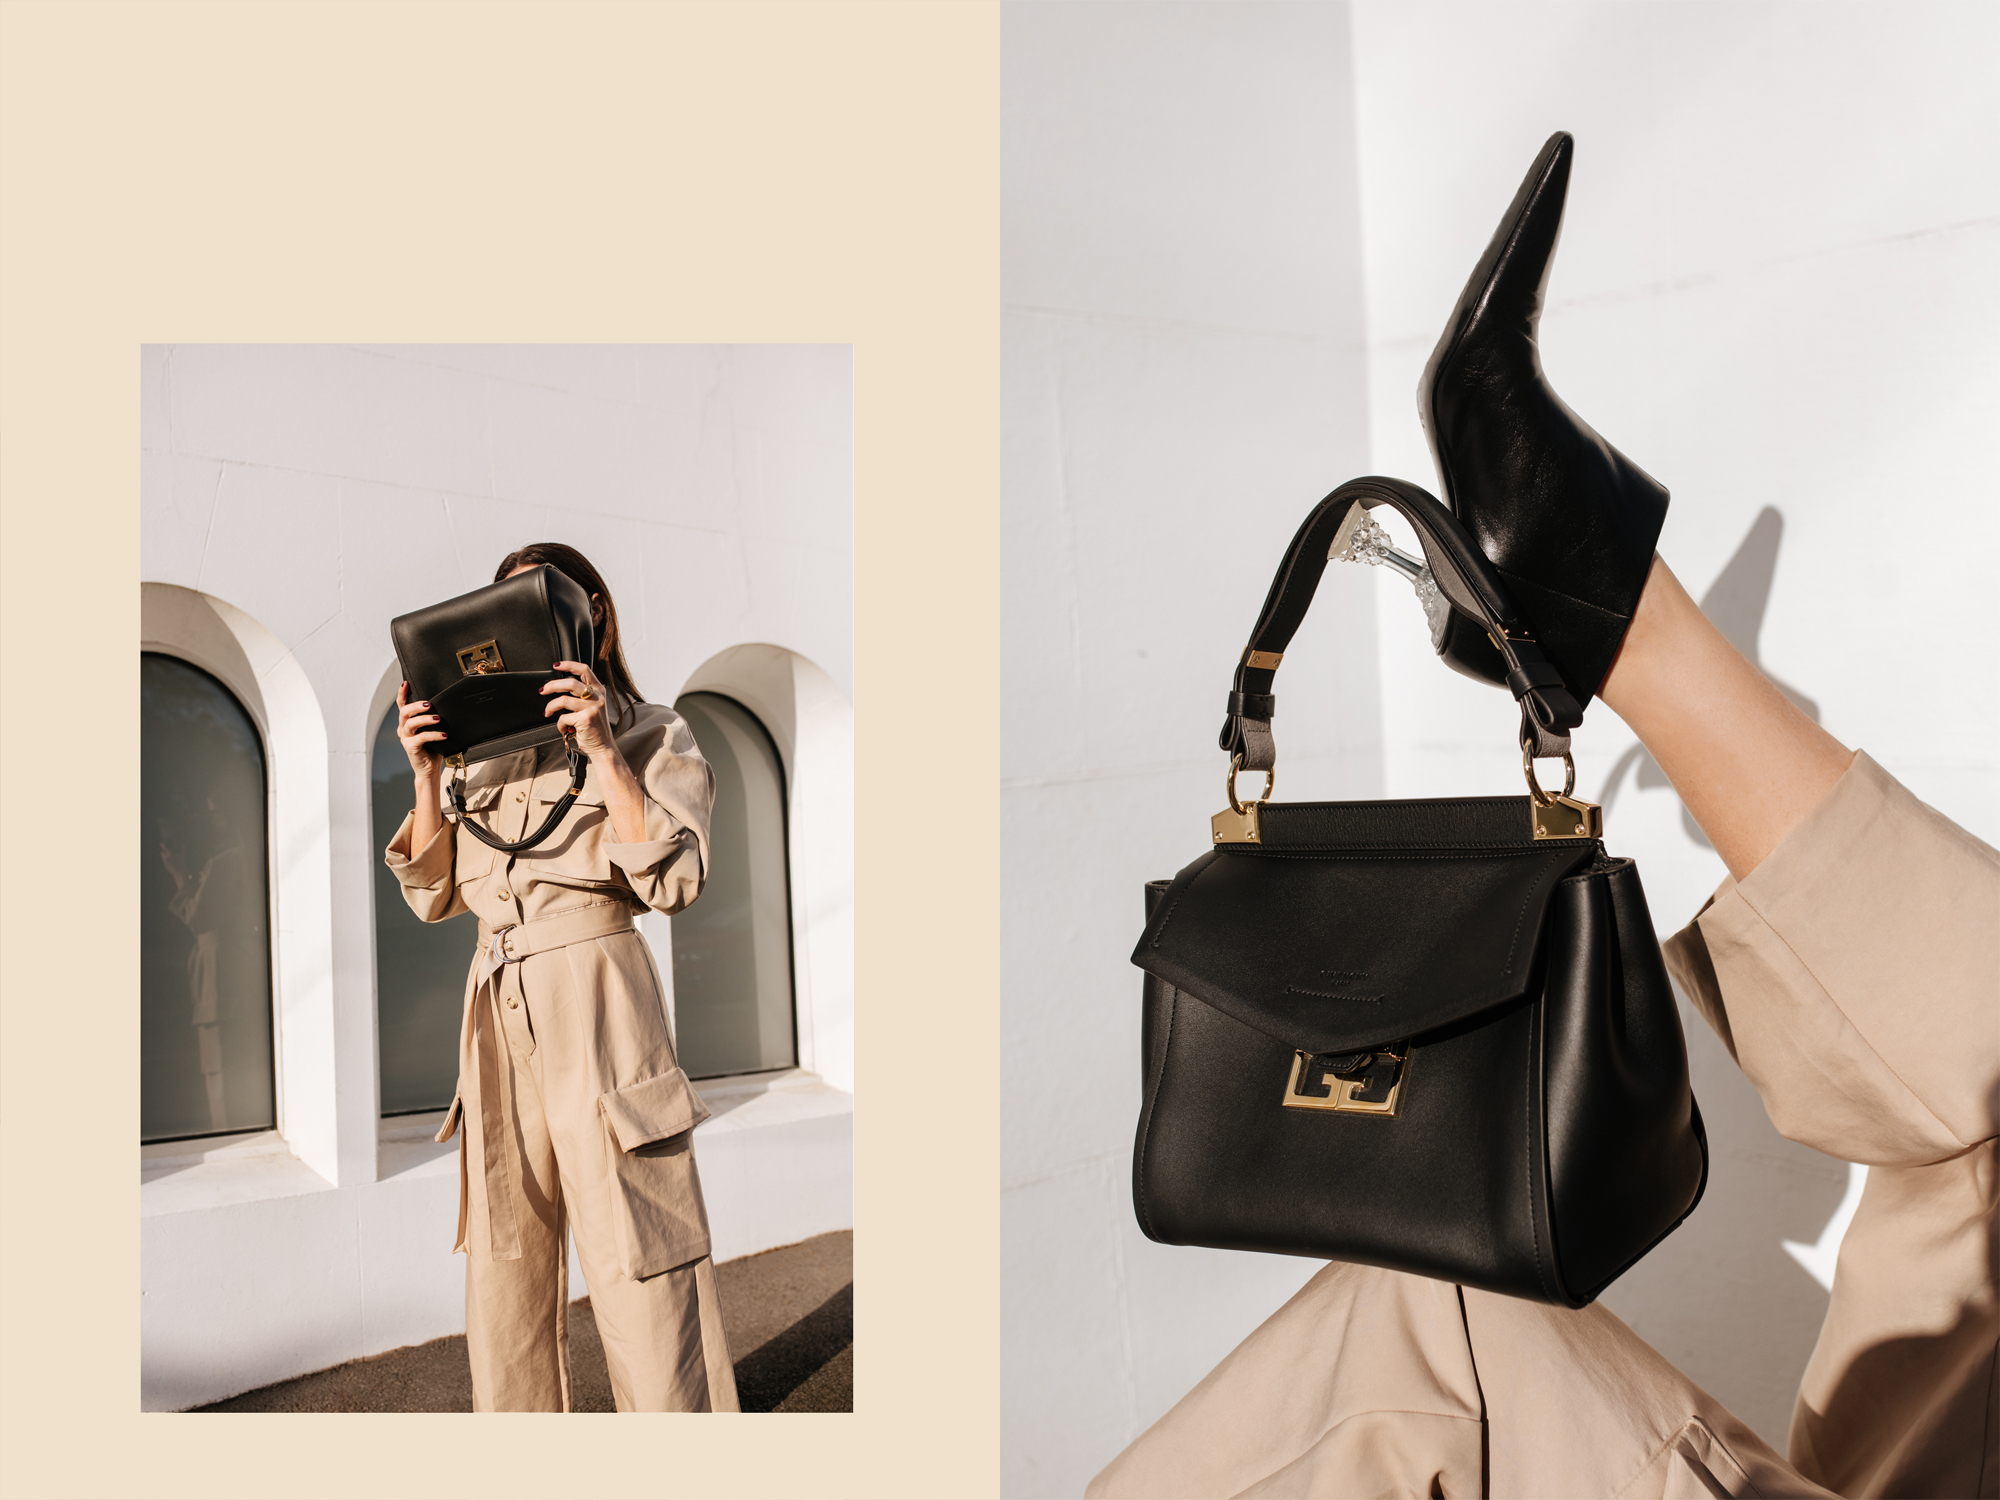 Givenchy, Mystic Bag, Frankie Shop, Jumpsuit, Celine Shoes, Outfit, Amanda Shadforth